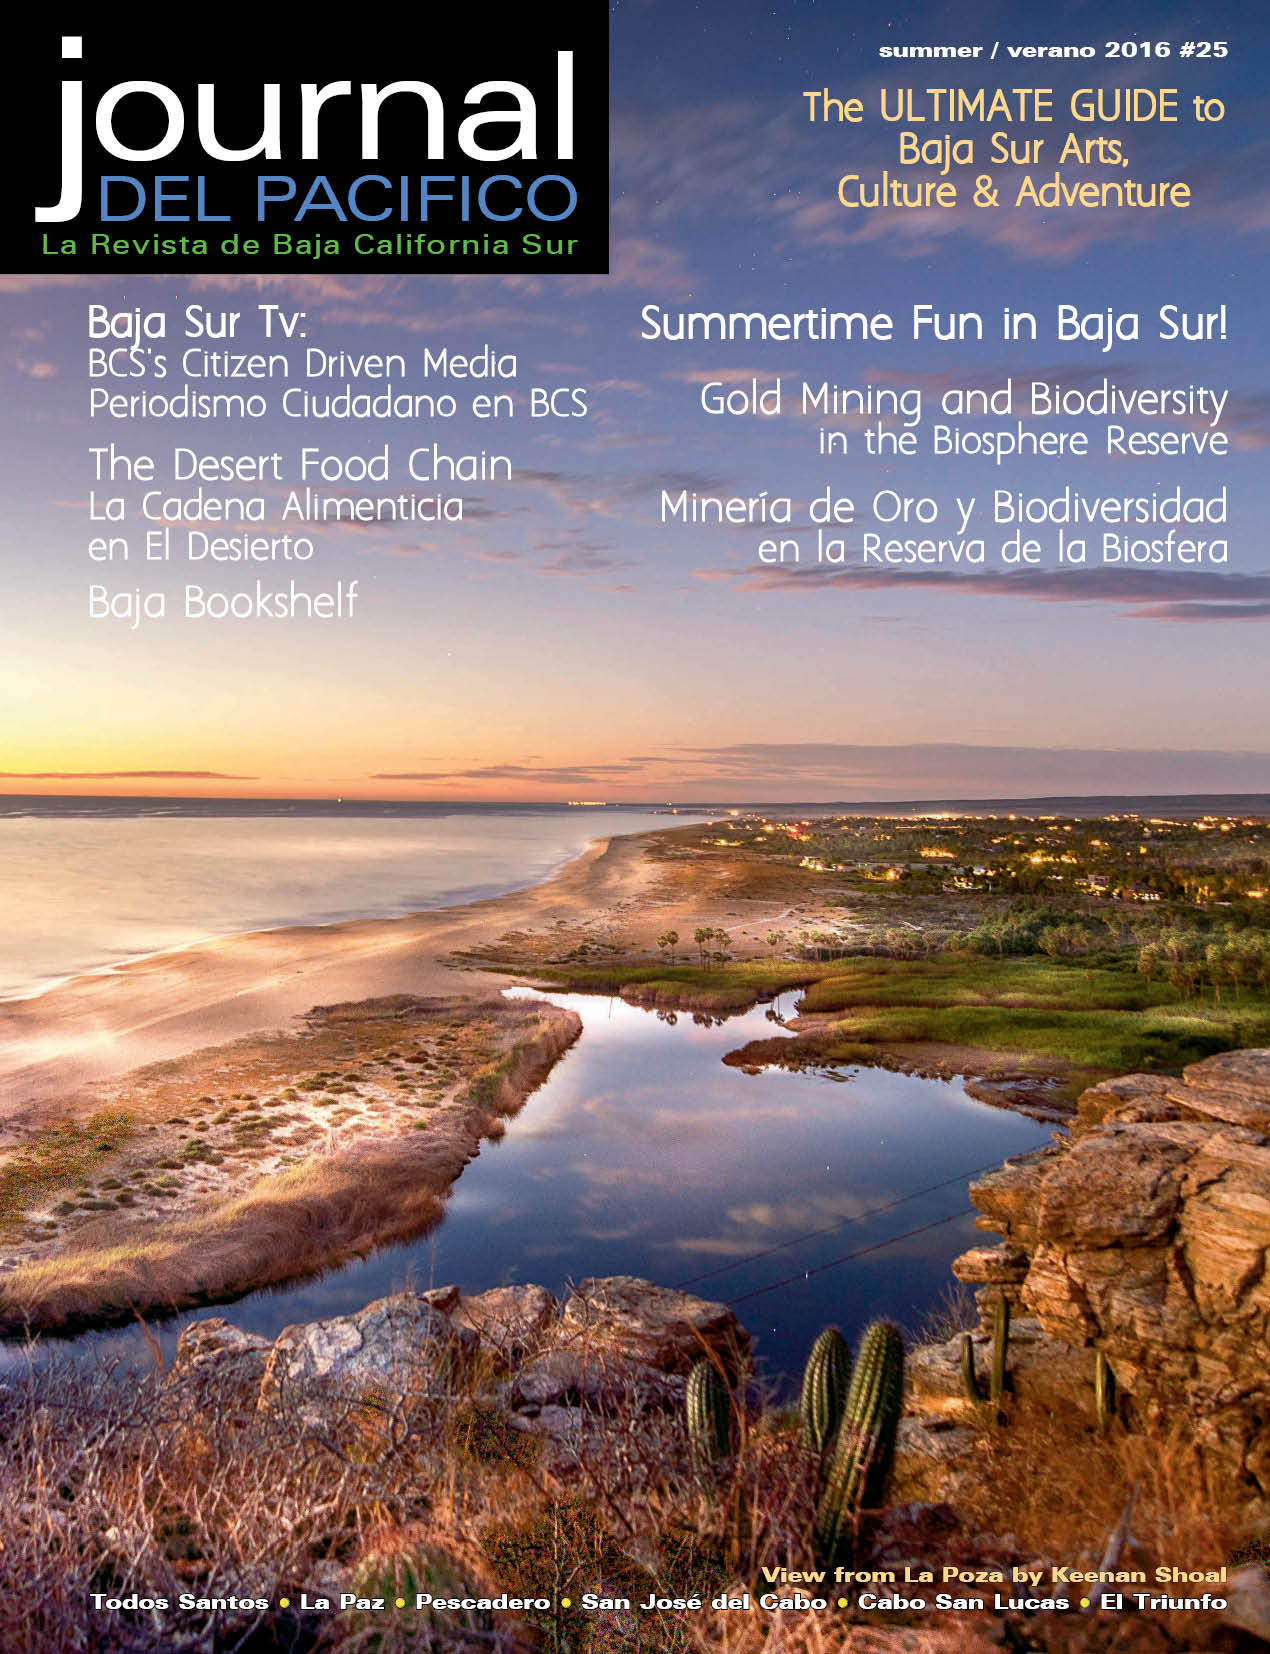 Summer 2016 Issue of Journal del Pacifico